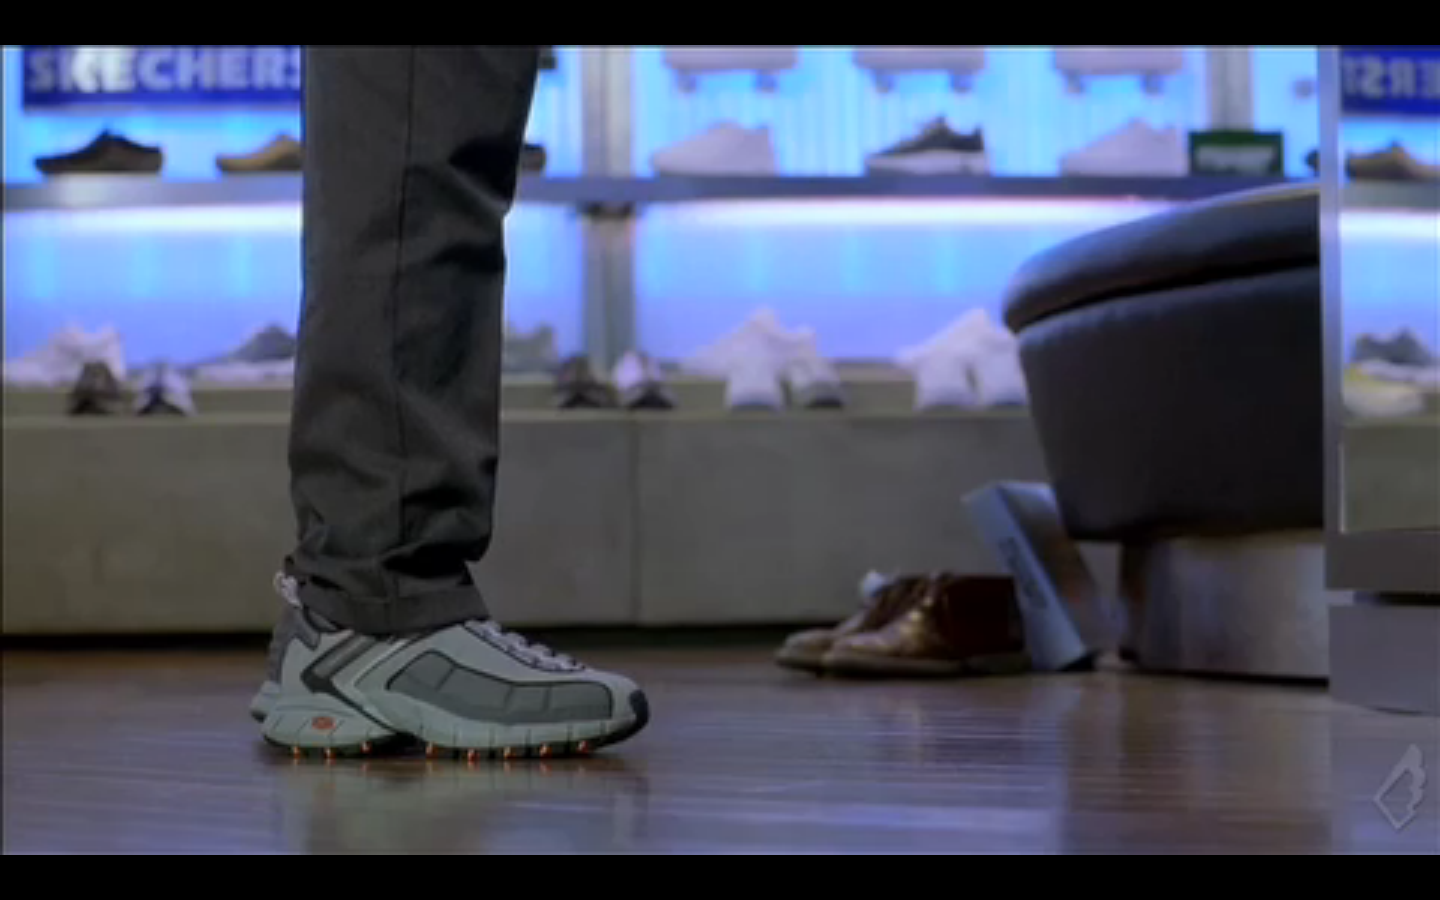 About a Boy: Marcus' Shoes